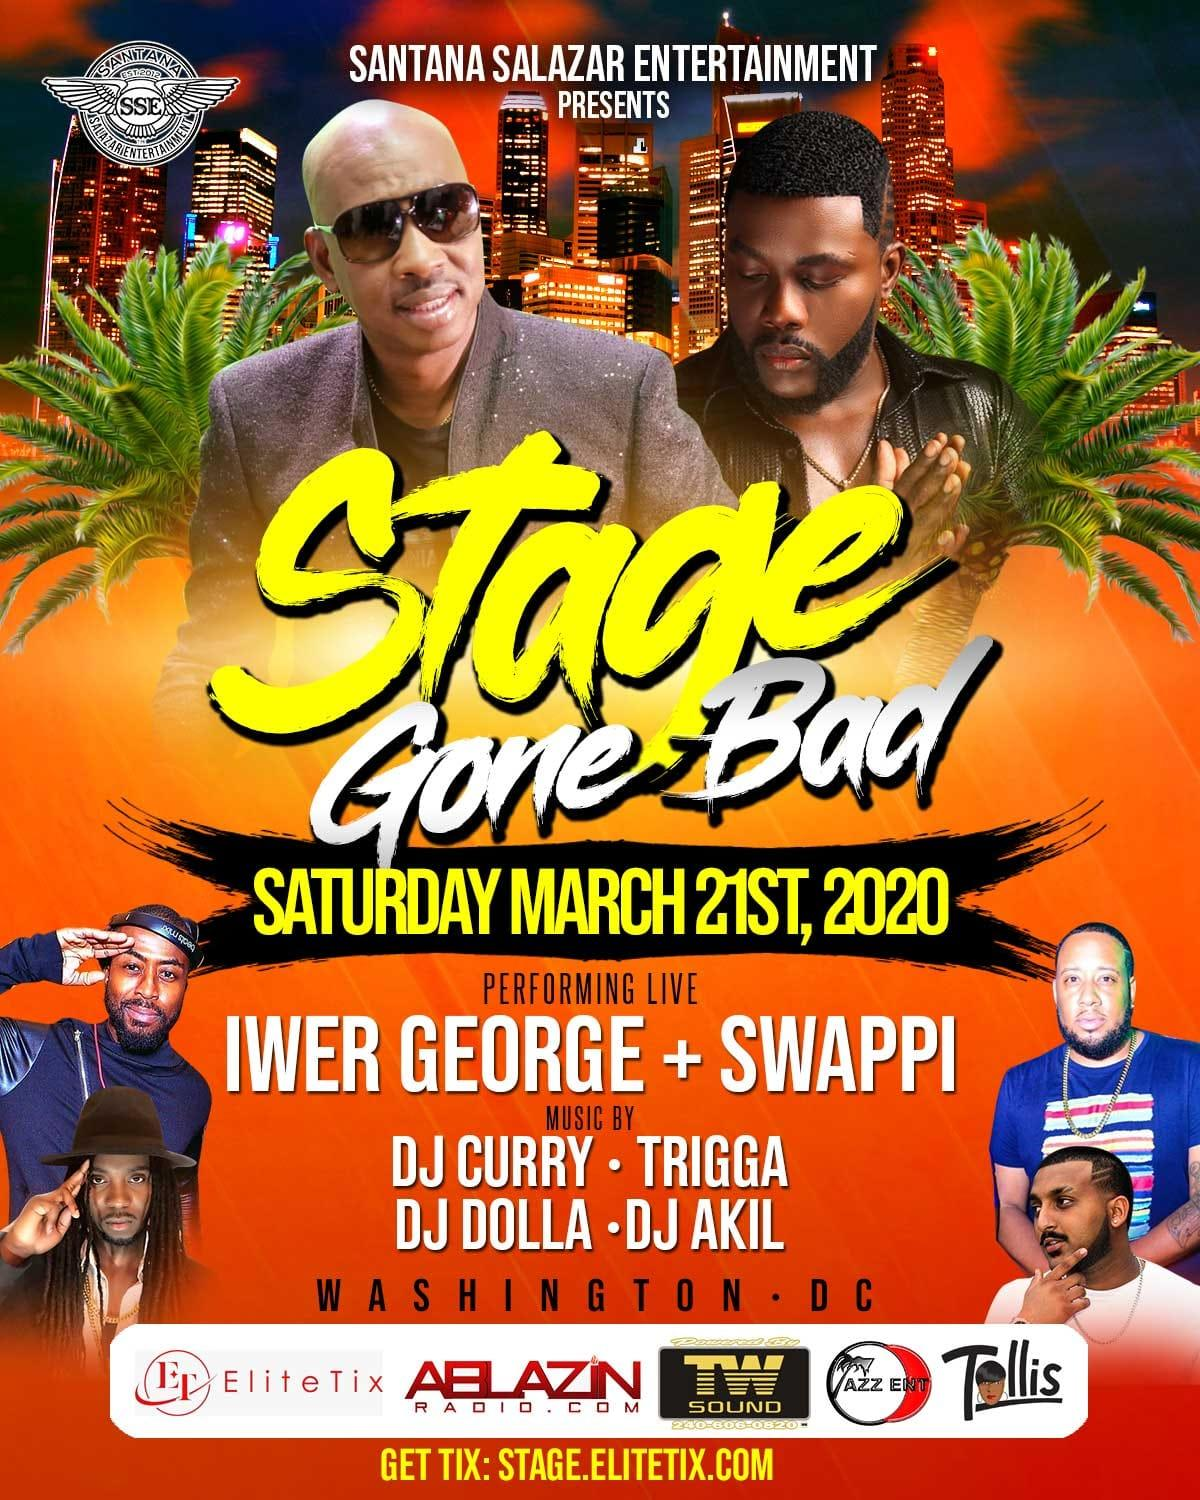 Stage Gone Bad flyer or graphic.